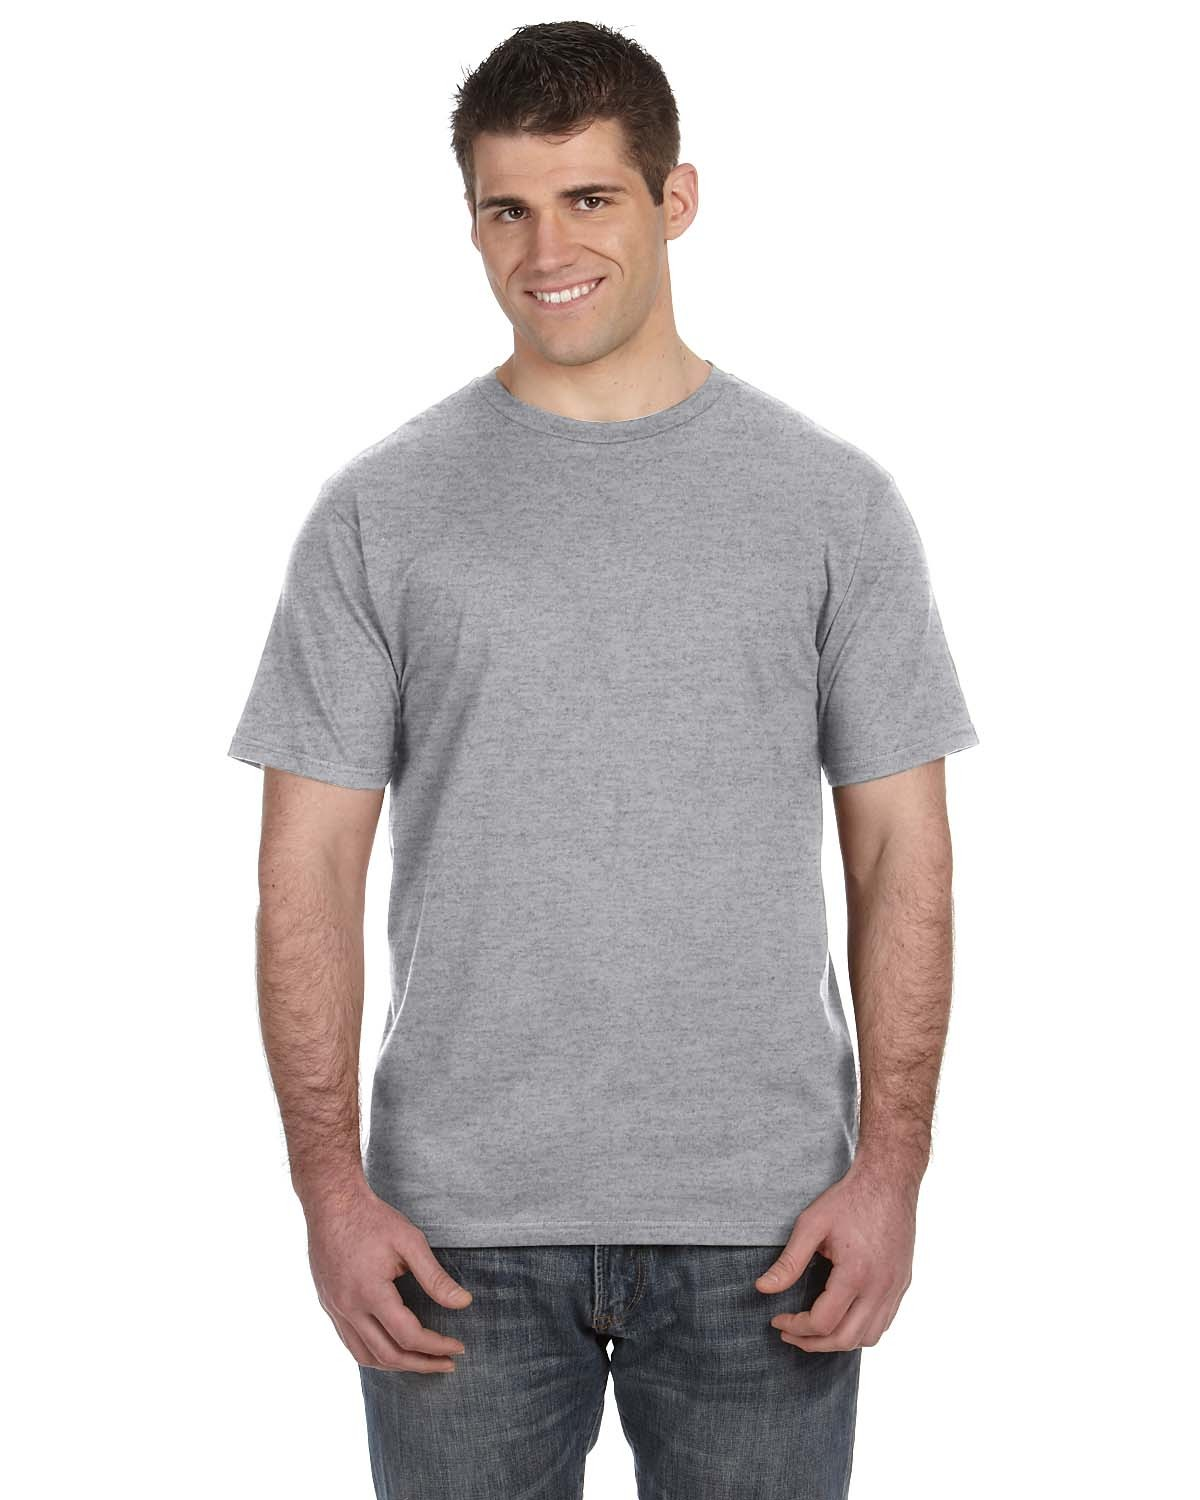 980 Anvil HEATHER GREY